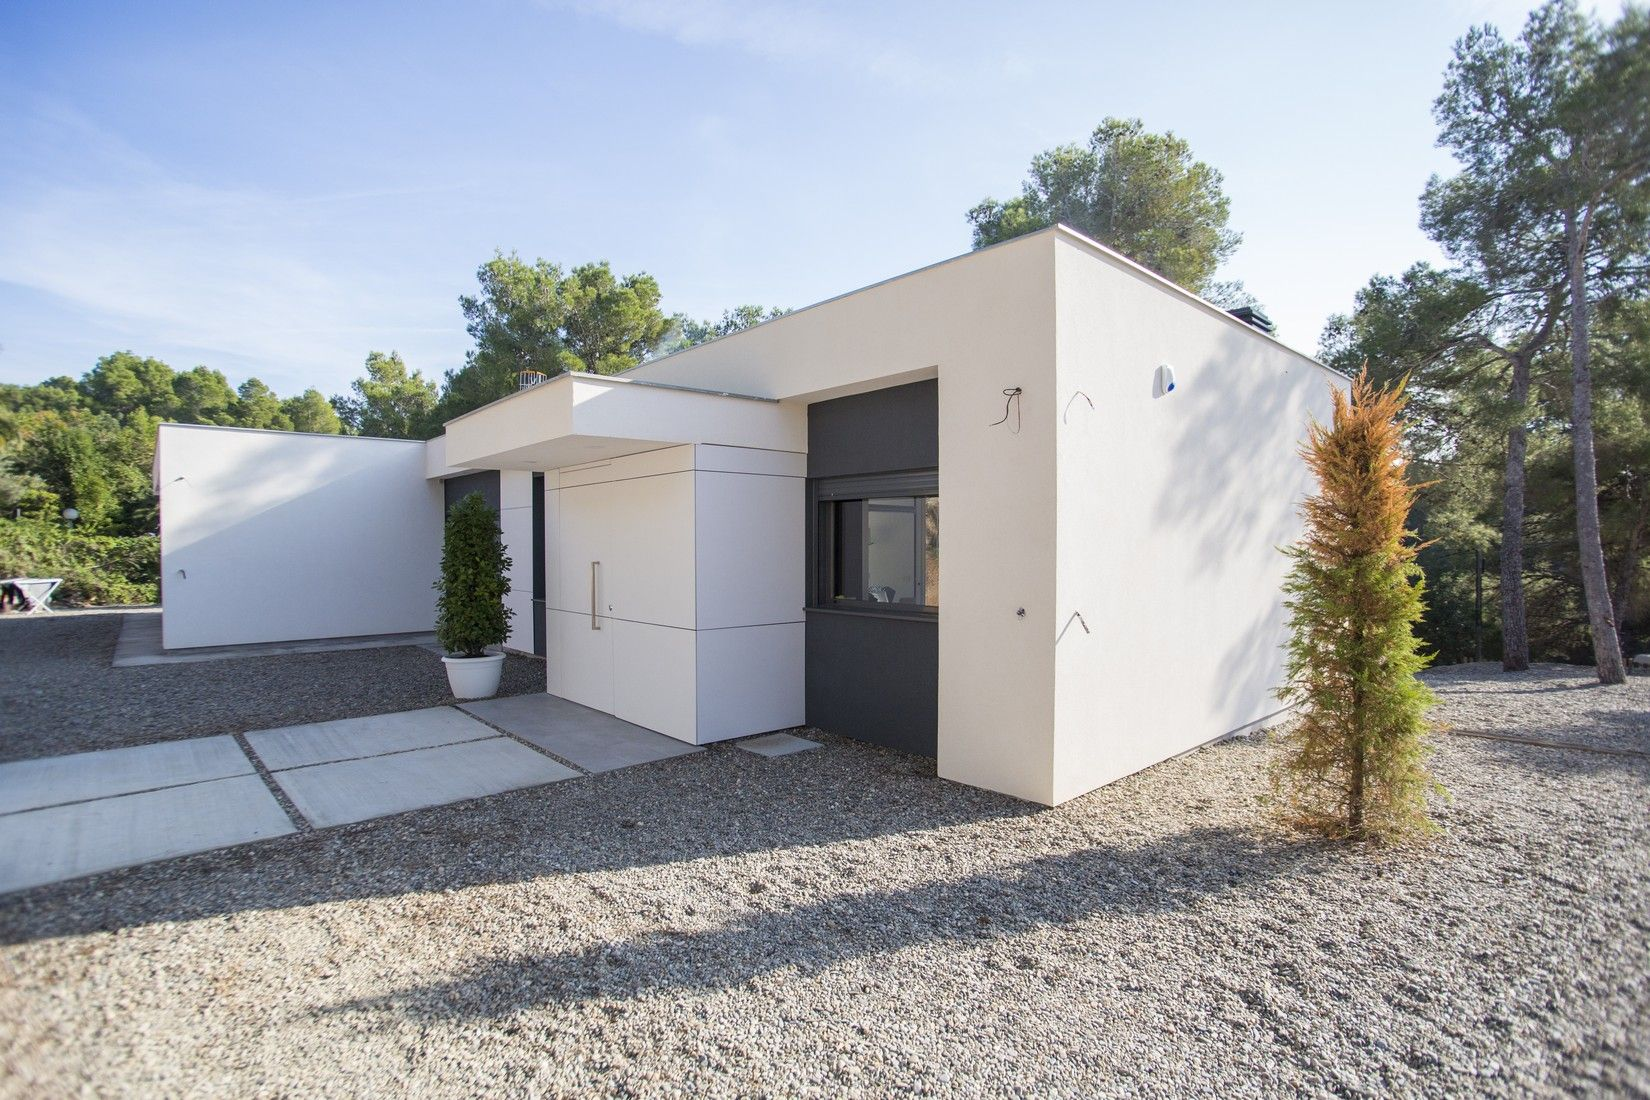 H.JMT-TO14 - Sustainable Steel Prefab Modular Homes – Collections